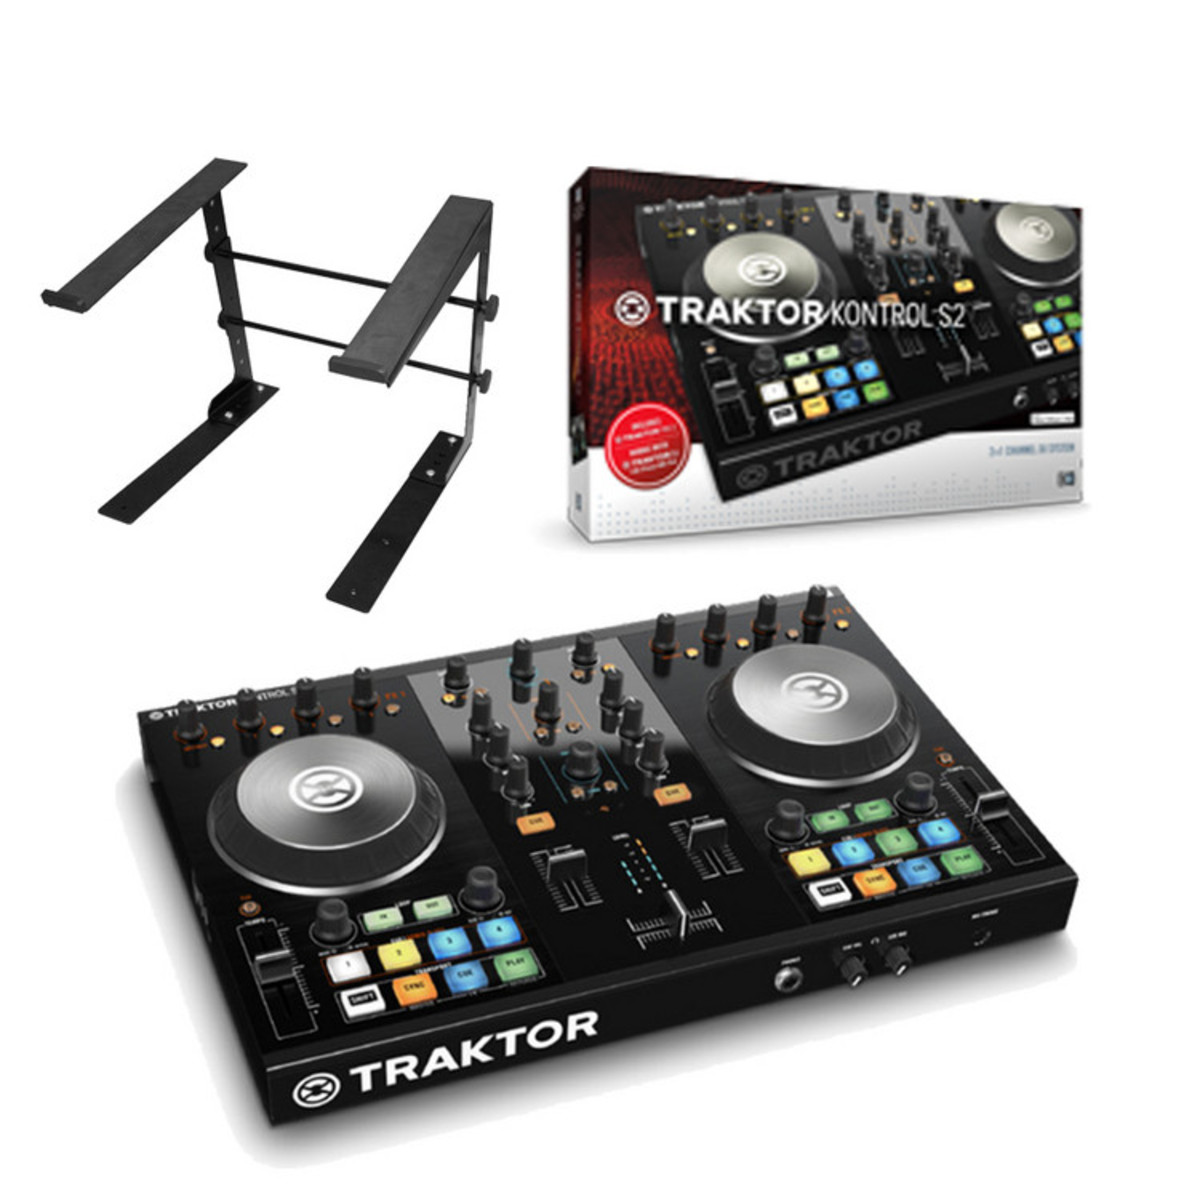 native instruments traktor kontrol s2 ensemble contr leur pupitre pour ordinateur portable. Black Bedroom Furniture Sets. Home Design Ideas